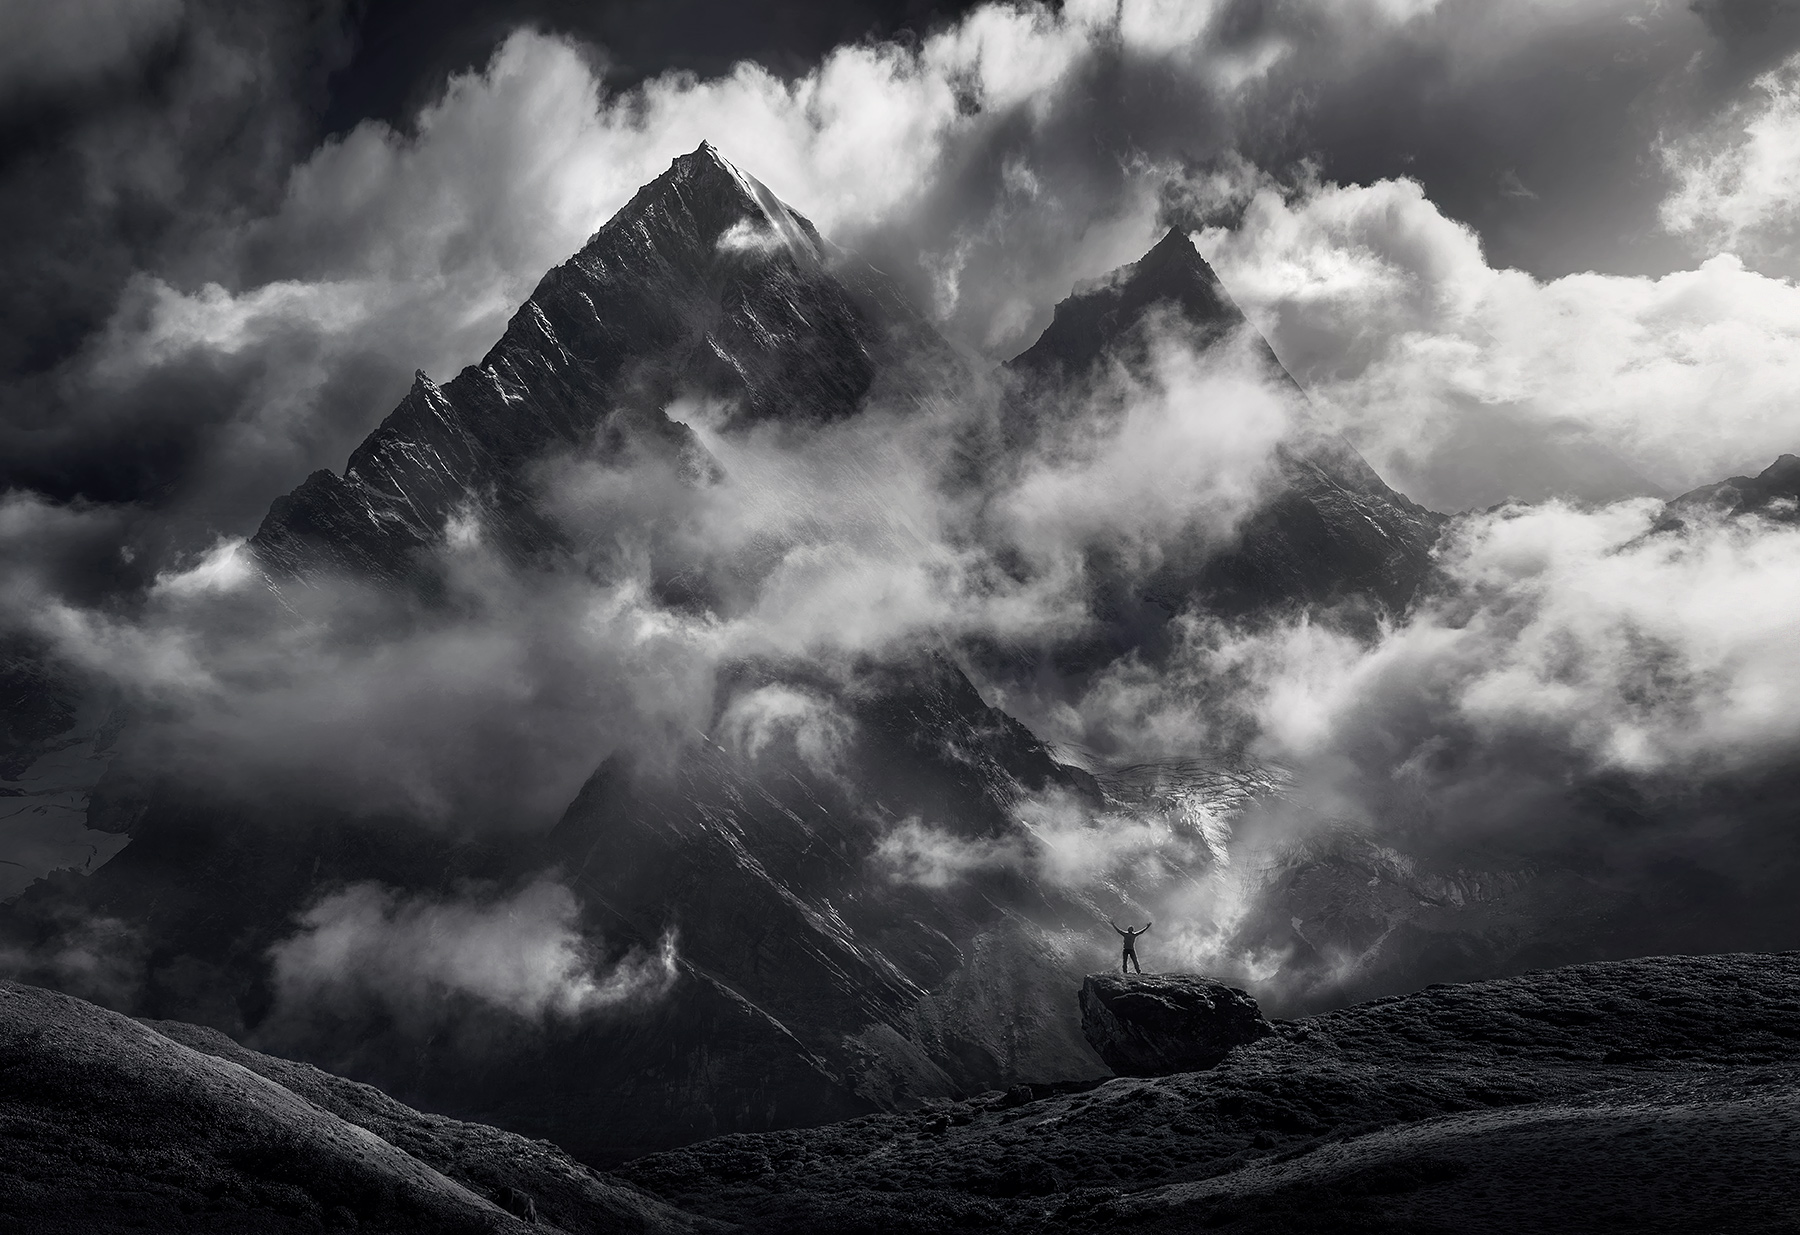 Steve Zigler, Himalaya, Tibet, Mountains, photo